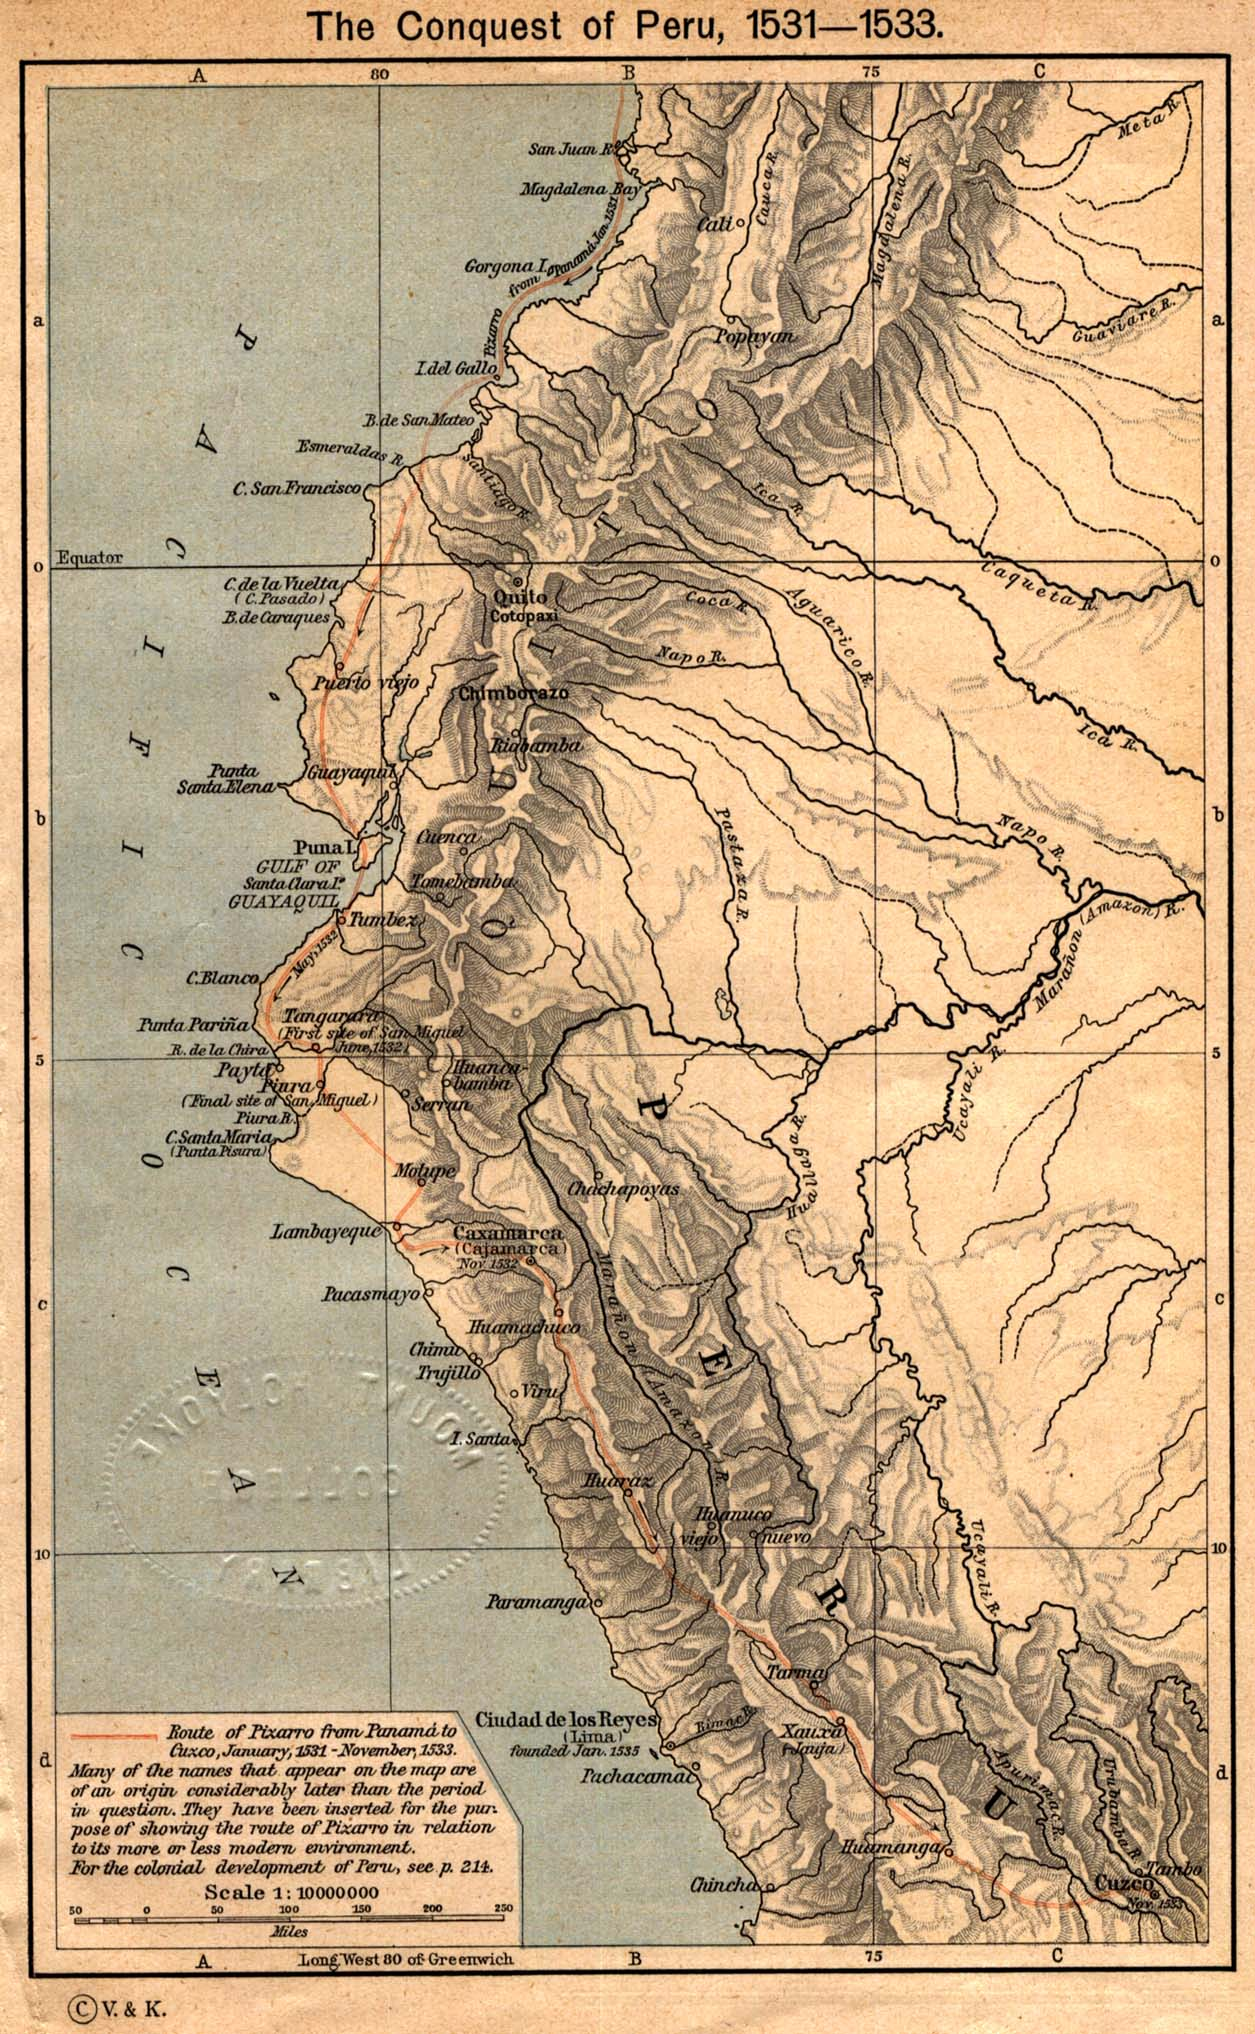 Peru maps perry castaeda map collection ut library online the conquest of peru 1531 1533 from the historical atlas gumiabroncs Gallery